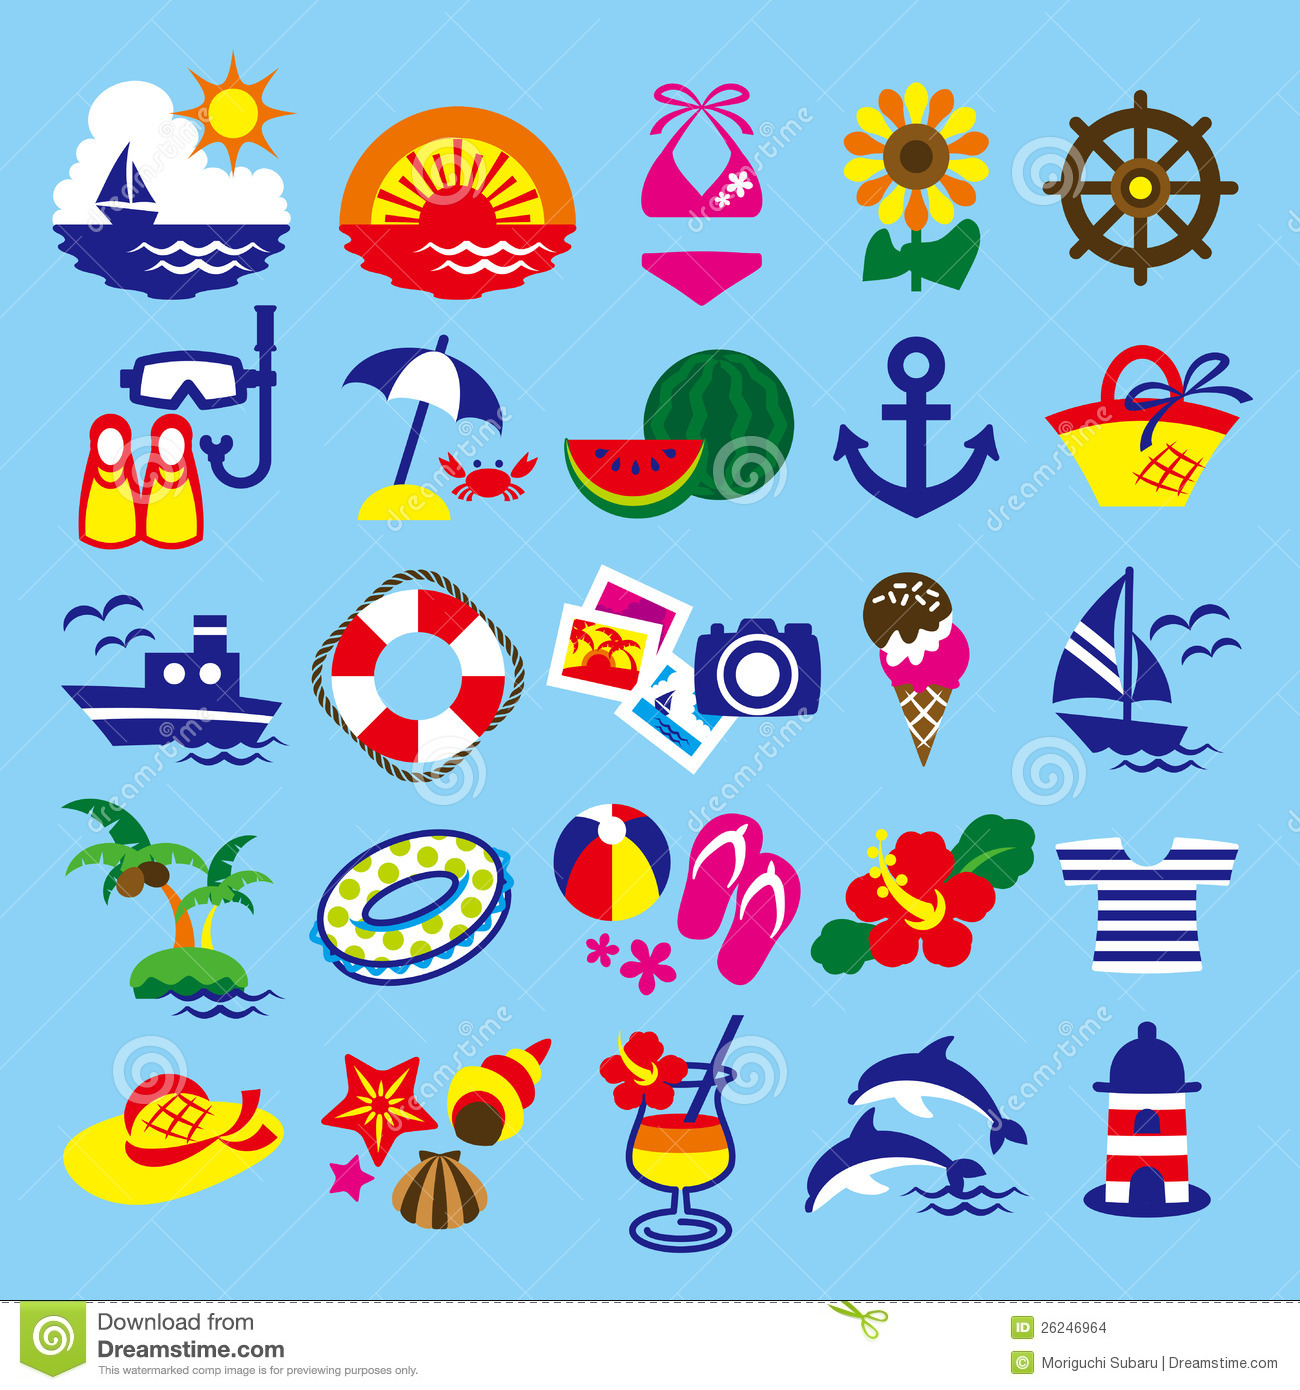 summer season clipart.